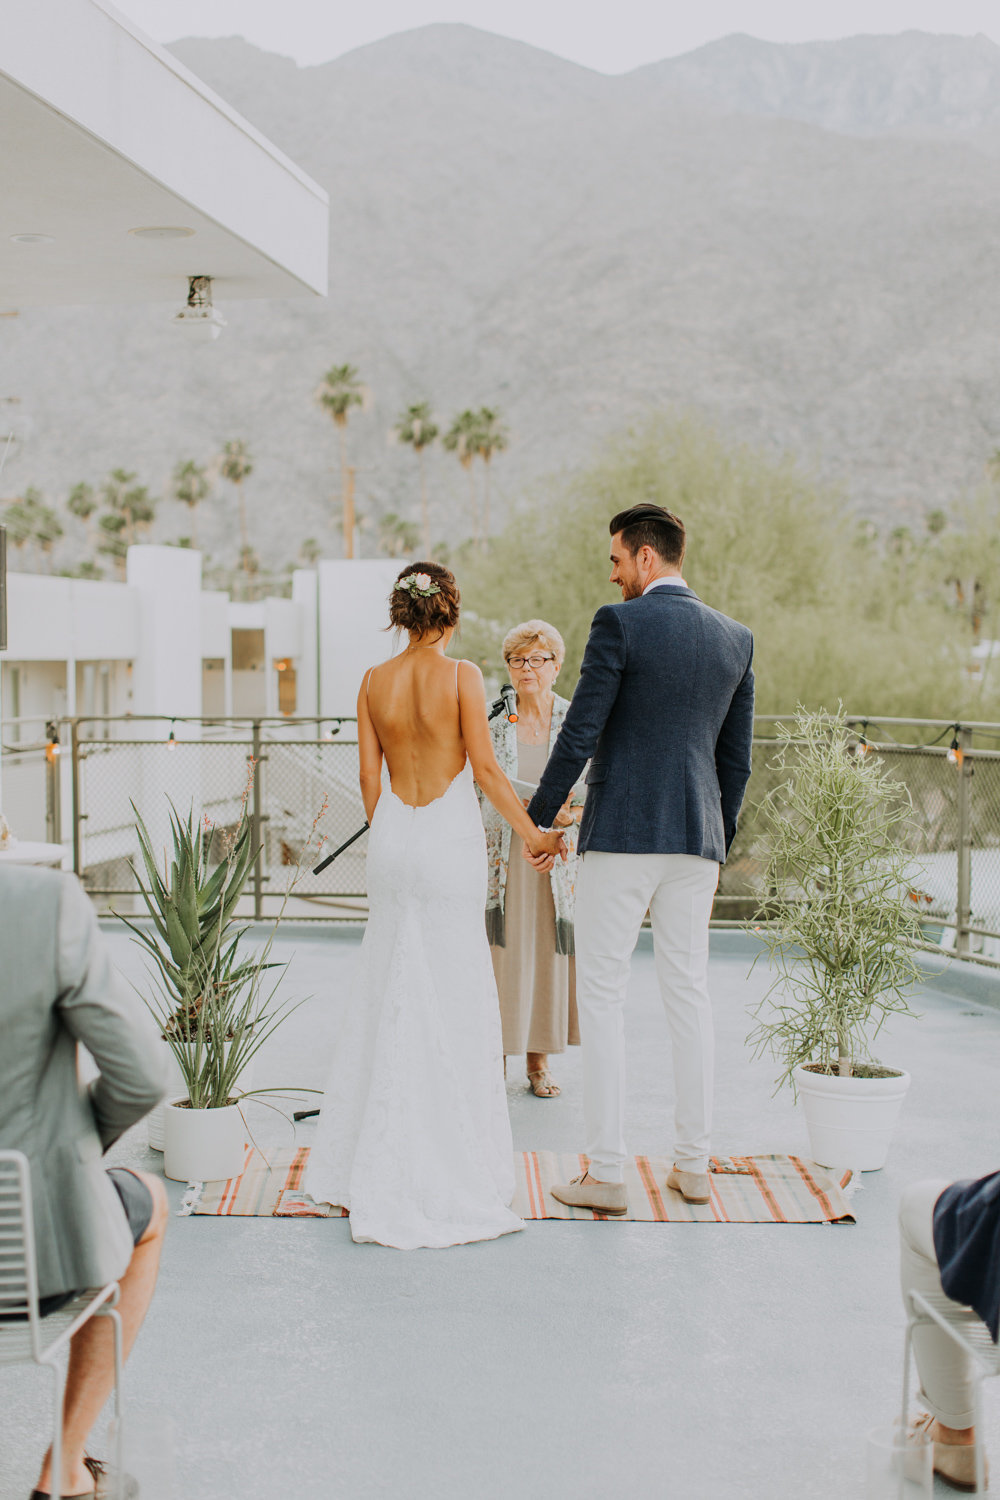 Brianna Broyles_Palm Springs Wedding Photographer_Ace Hotel Wedding_Ace Hotel Palm Springs-43